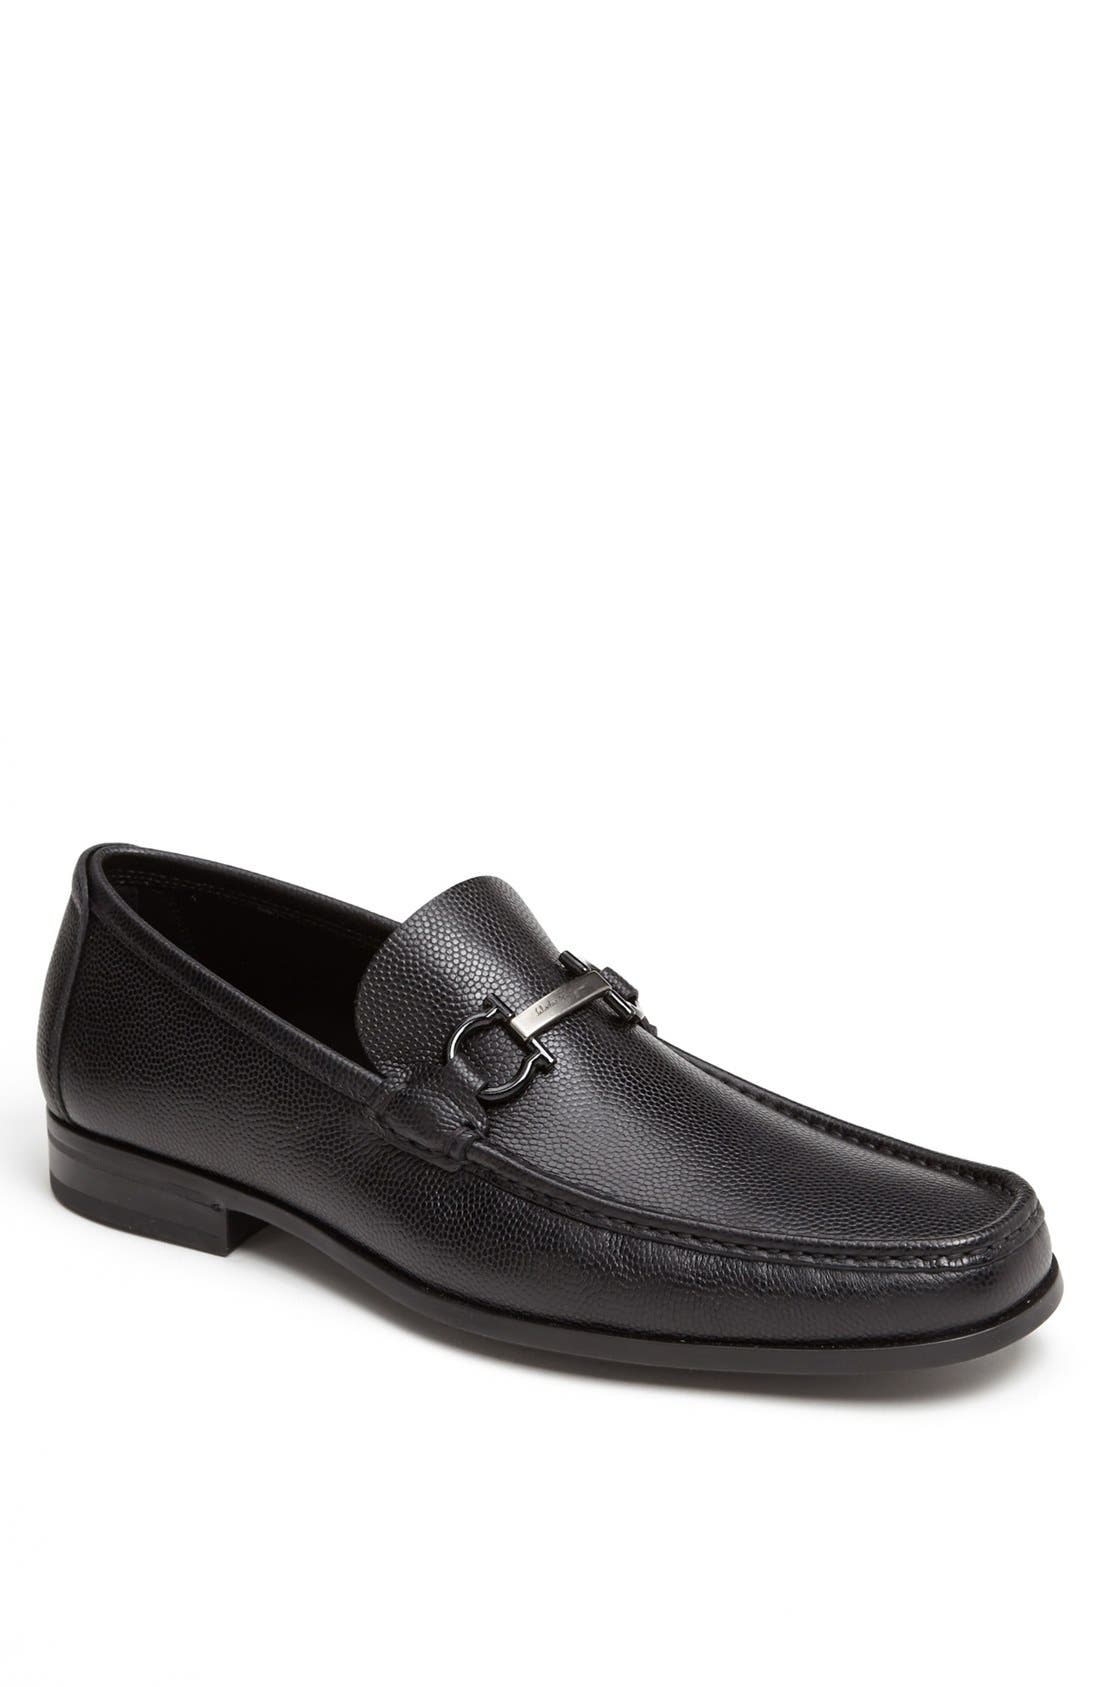 'Regal' Pebbled Leather Loafer,                         Main,                         color, 001